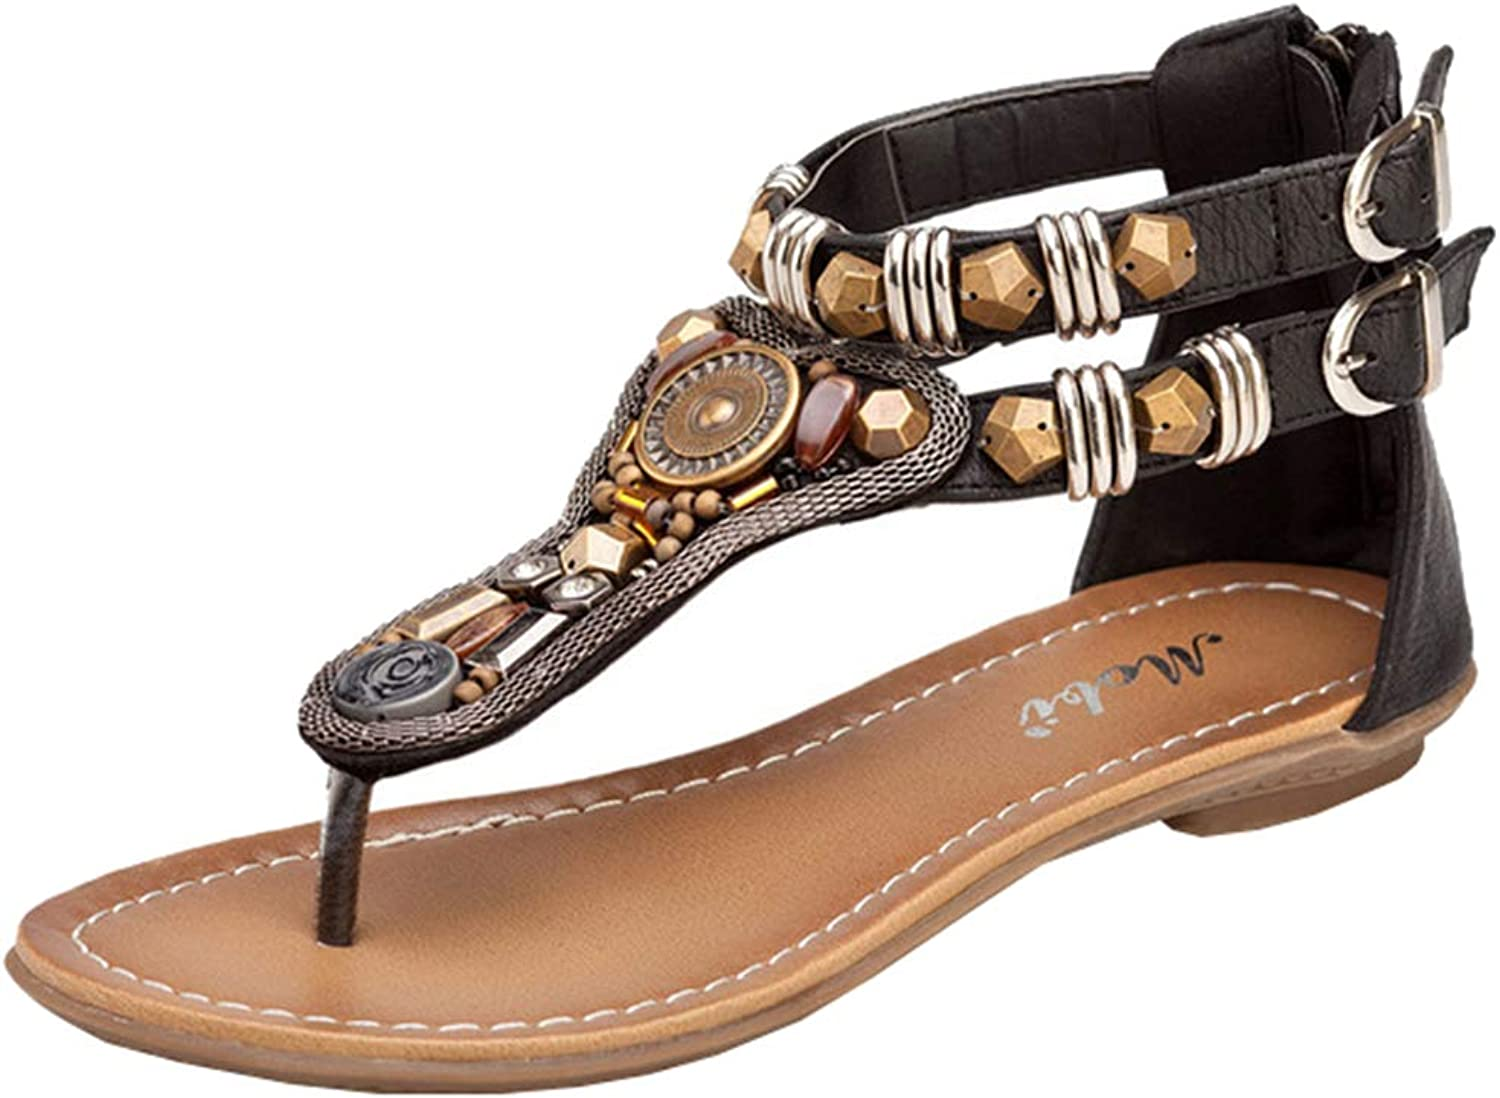 AGOWOO Women Sandals Ankle Strap Flat Thong Beaded Zipper Gladiator